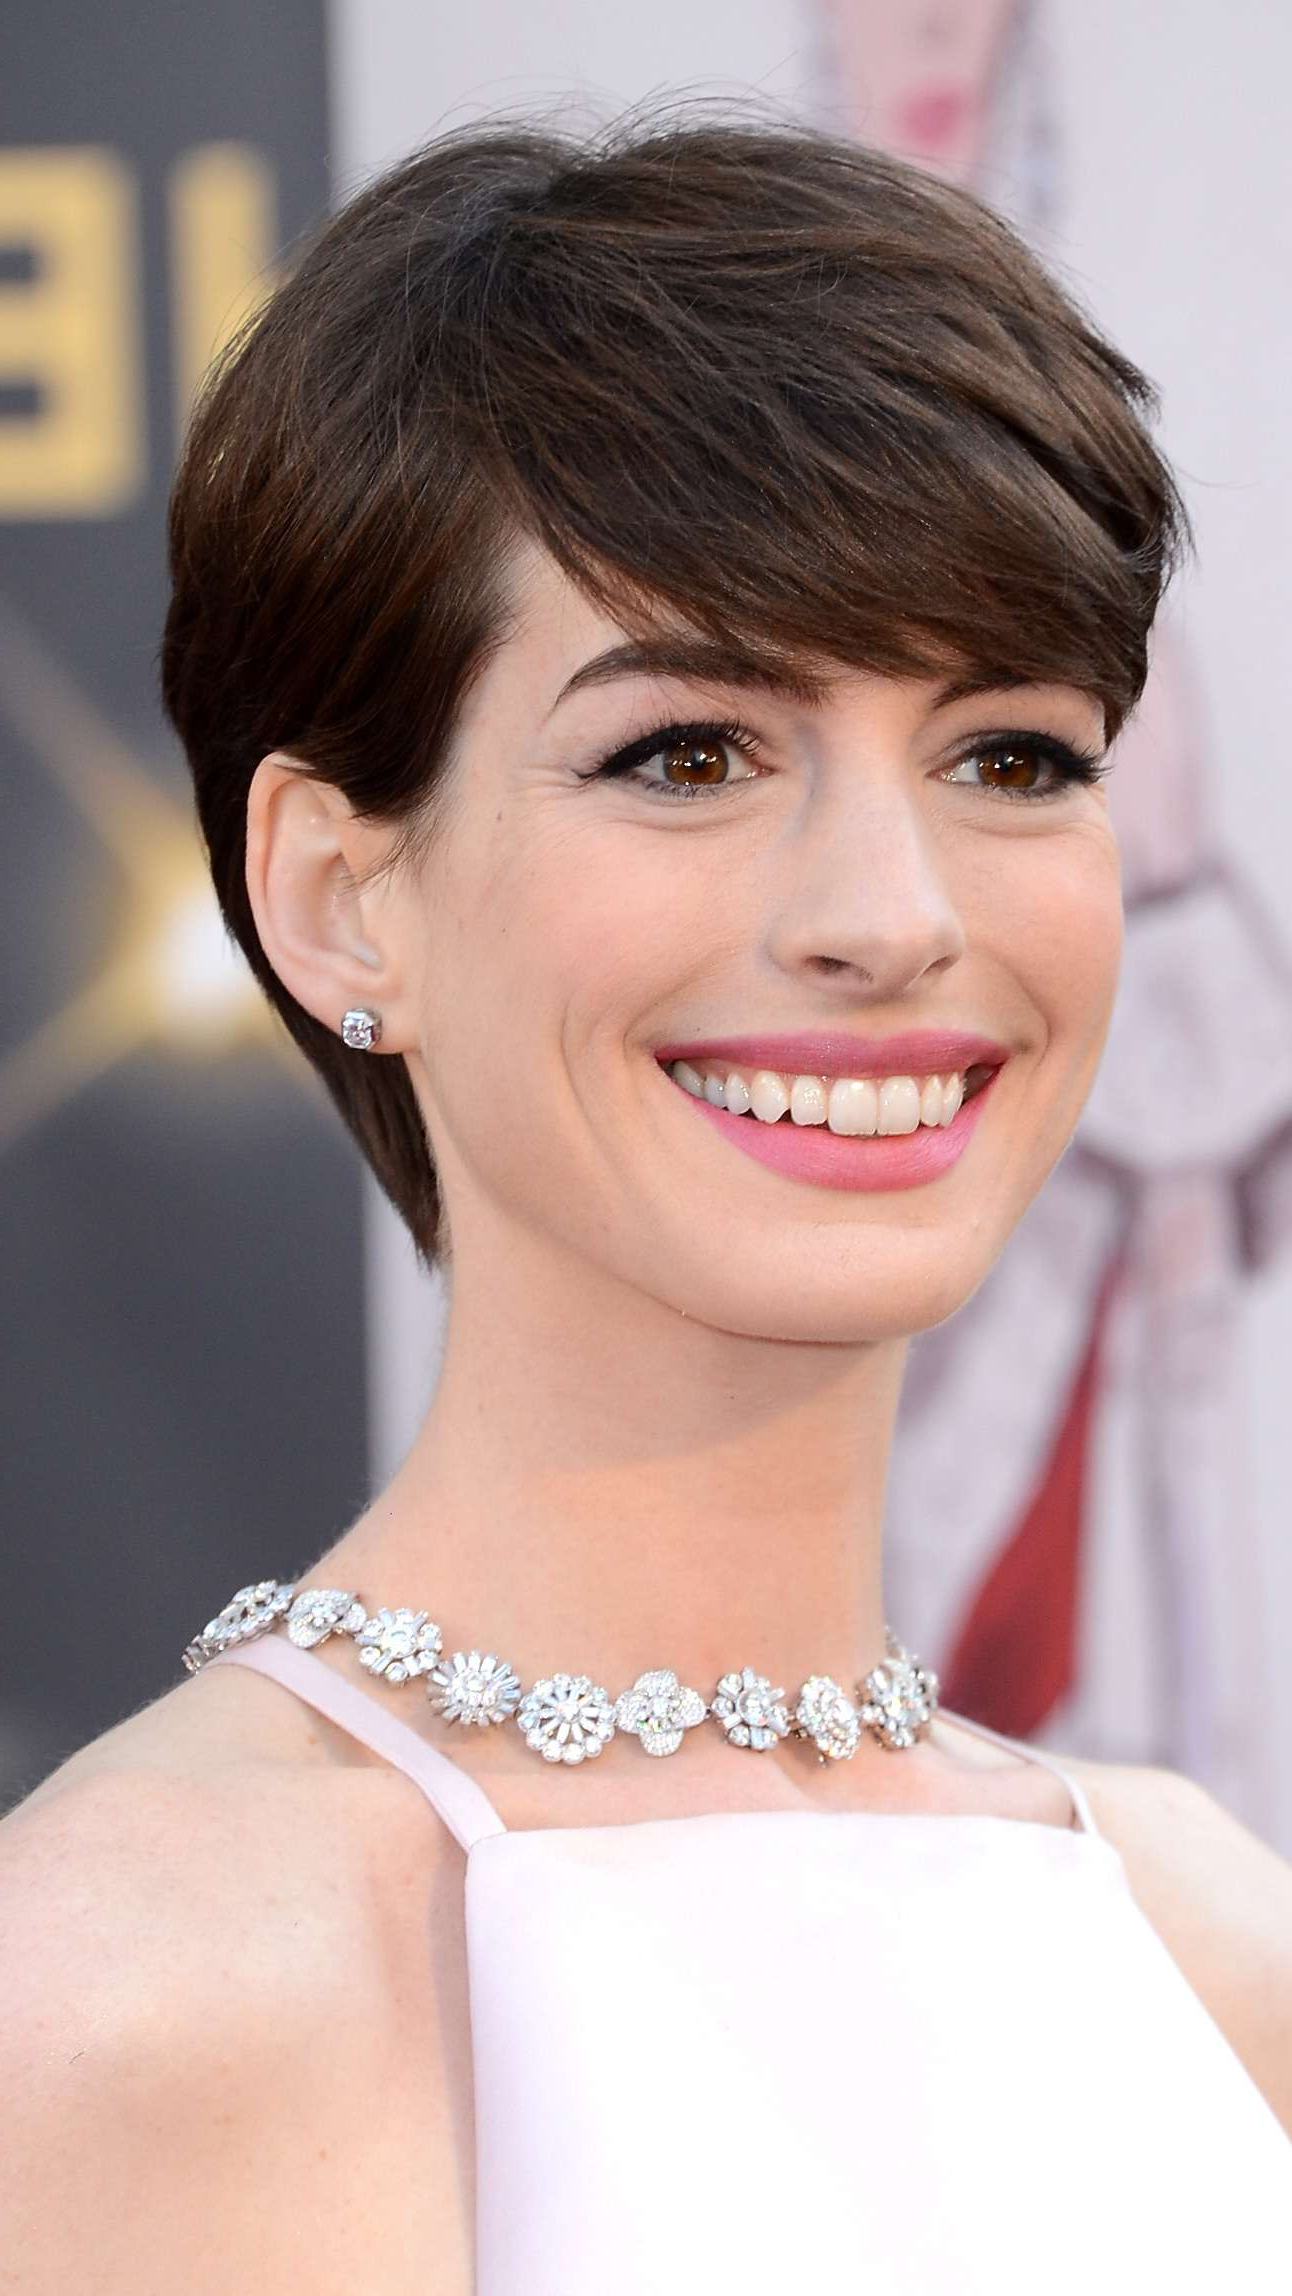 22 Inspiring Short Haircuts For Every Face Shape For Short Haircuts For Square Jawline (View 4 of 25)